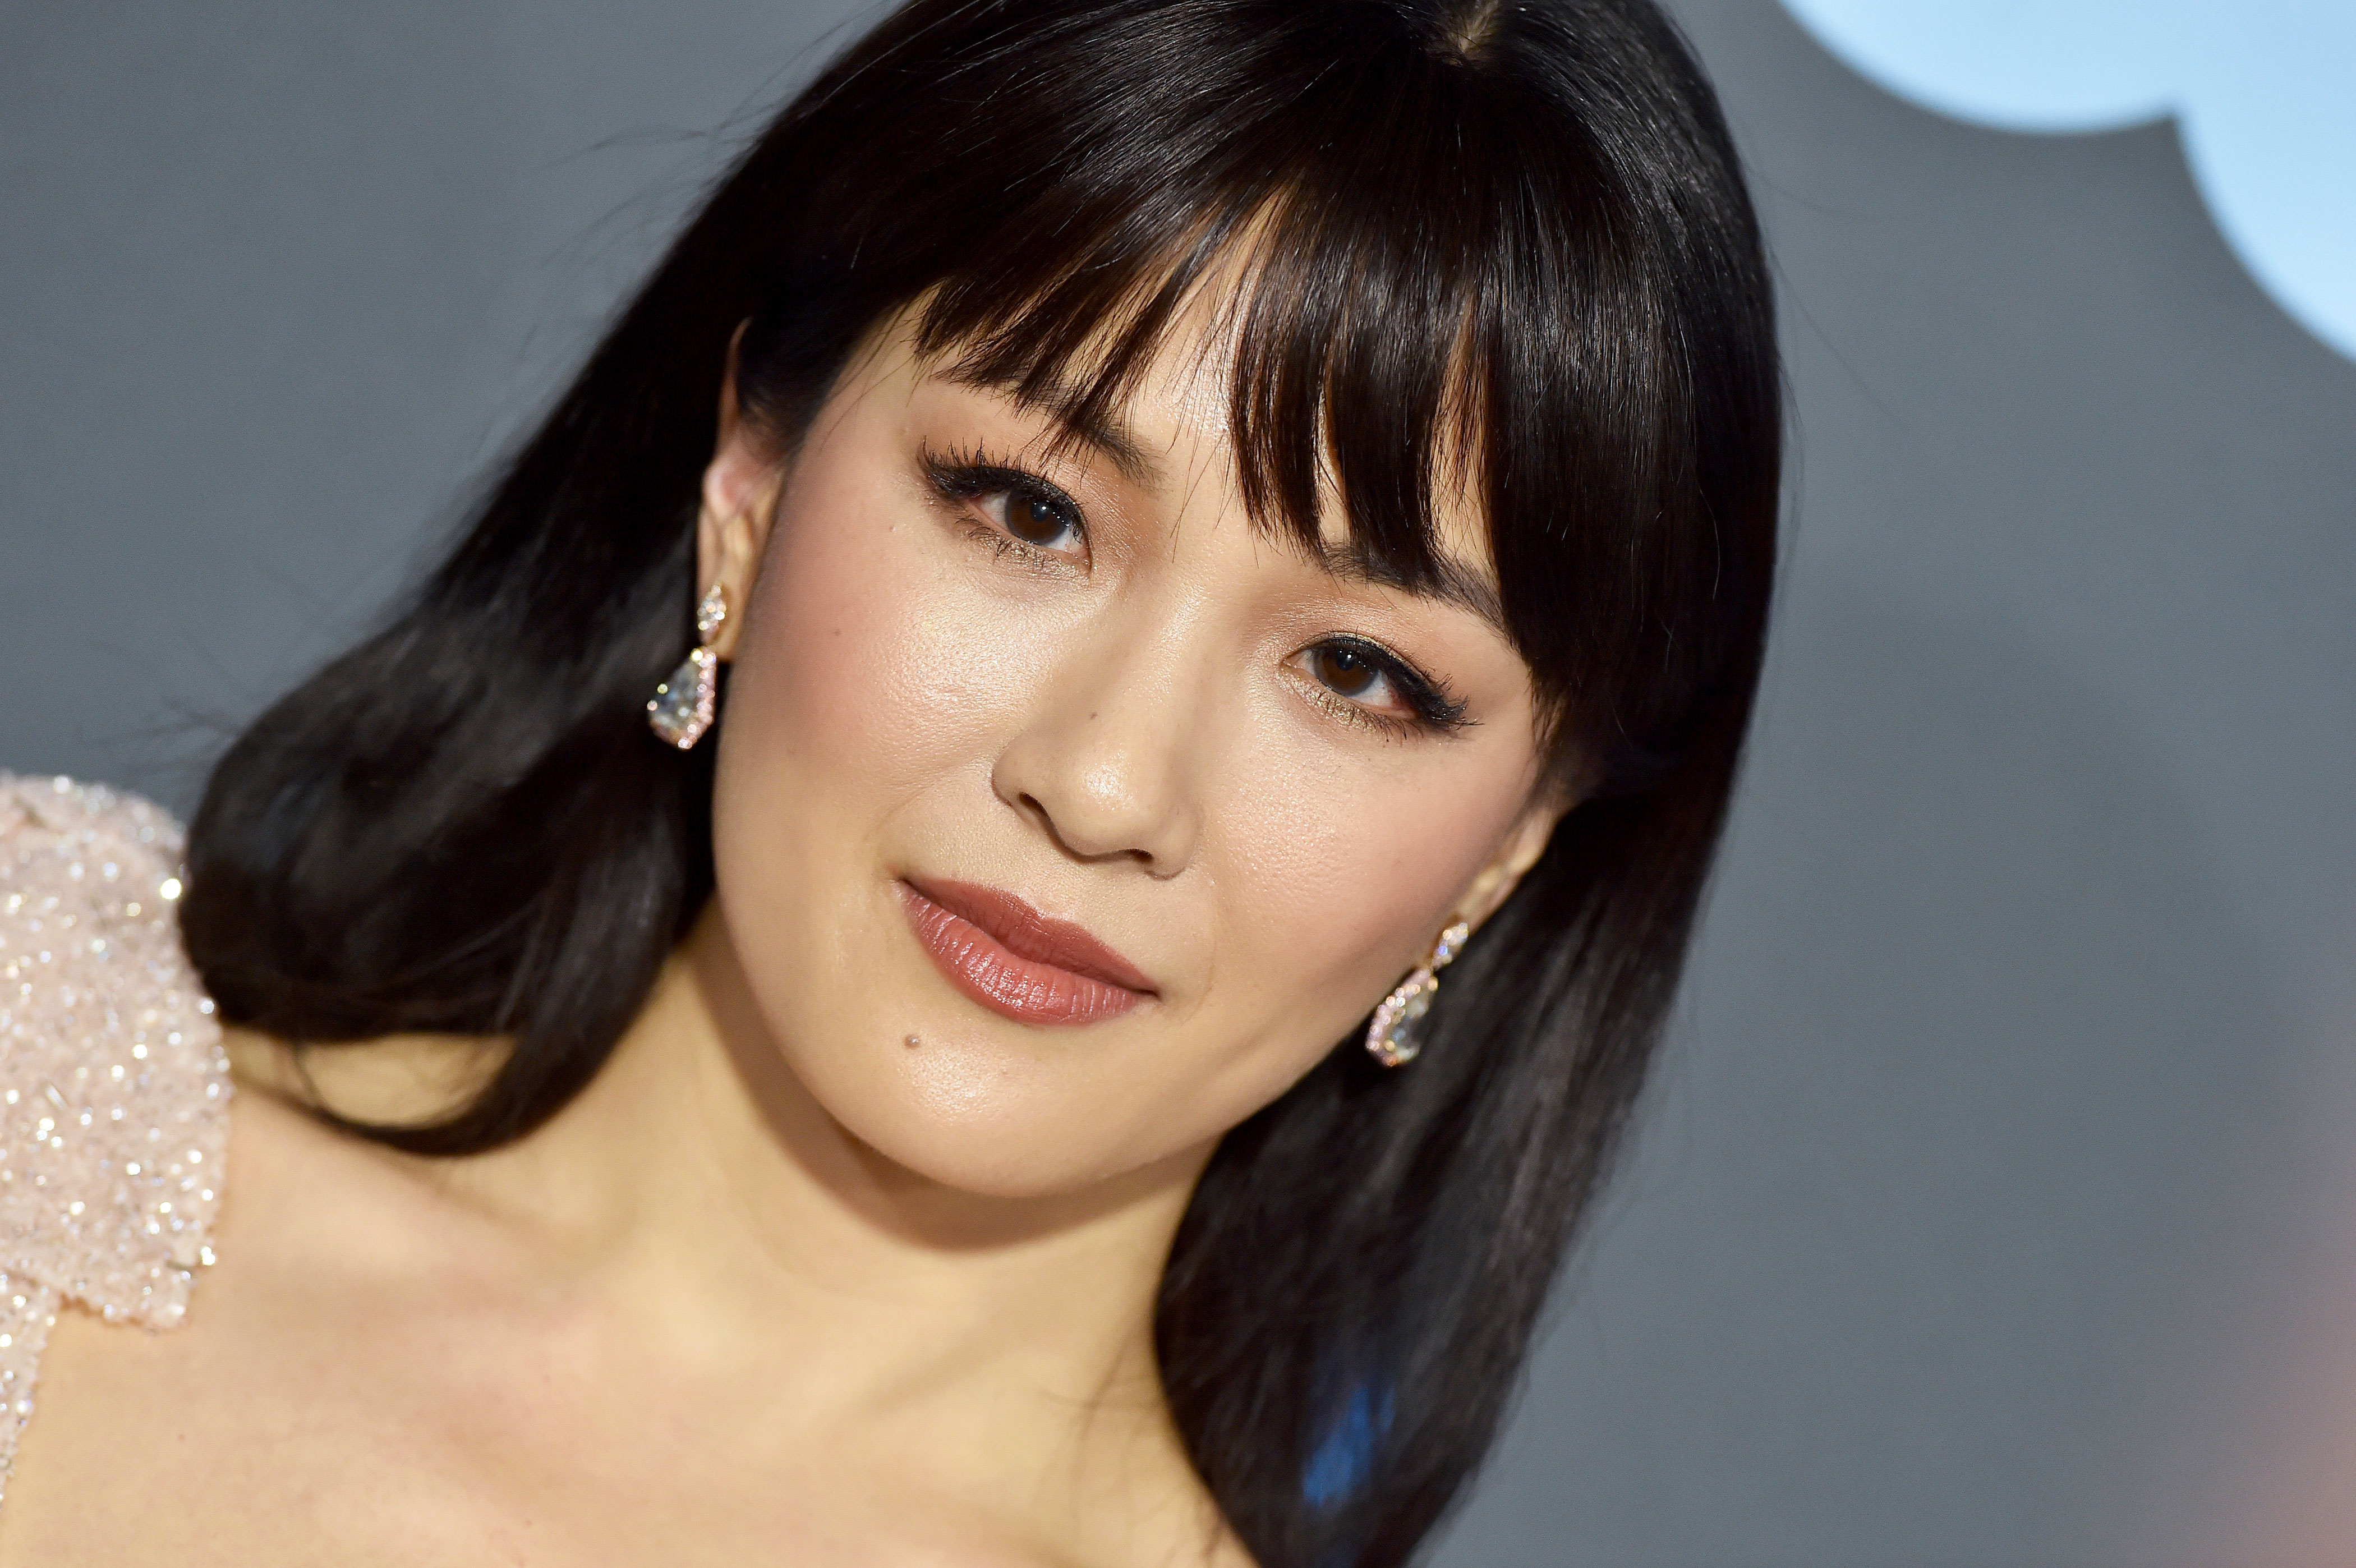 Constance Wu Critics' Choice Awards 2019 - With freshly shorn bangs by Derek Yuen using toos by ghd and glimmering gilded lids by makeup artist Molly Greenwald using Pat McGrath Labs.